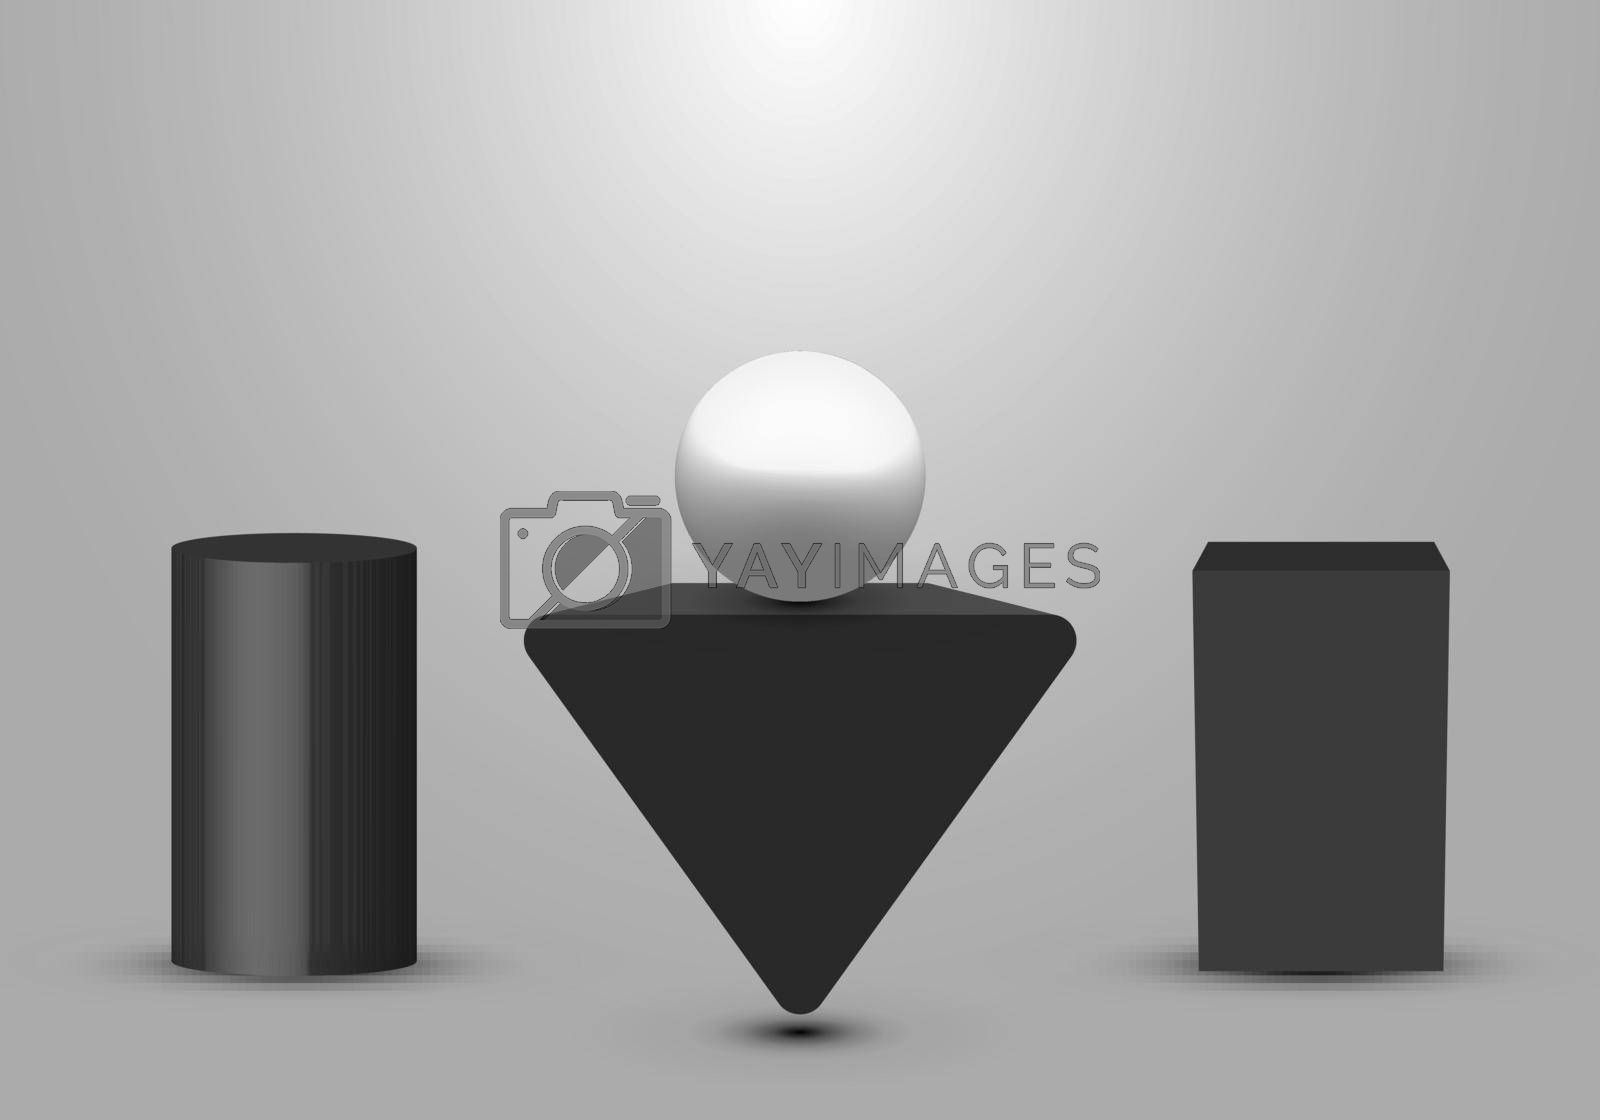 3D realistic black geometric pedestal, triangle, box studio room with light product shelf on white background. Vector illustration